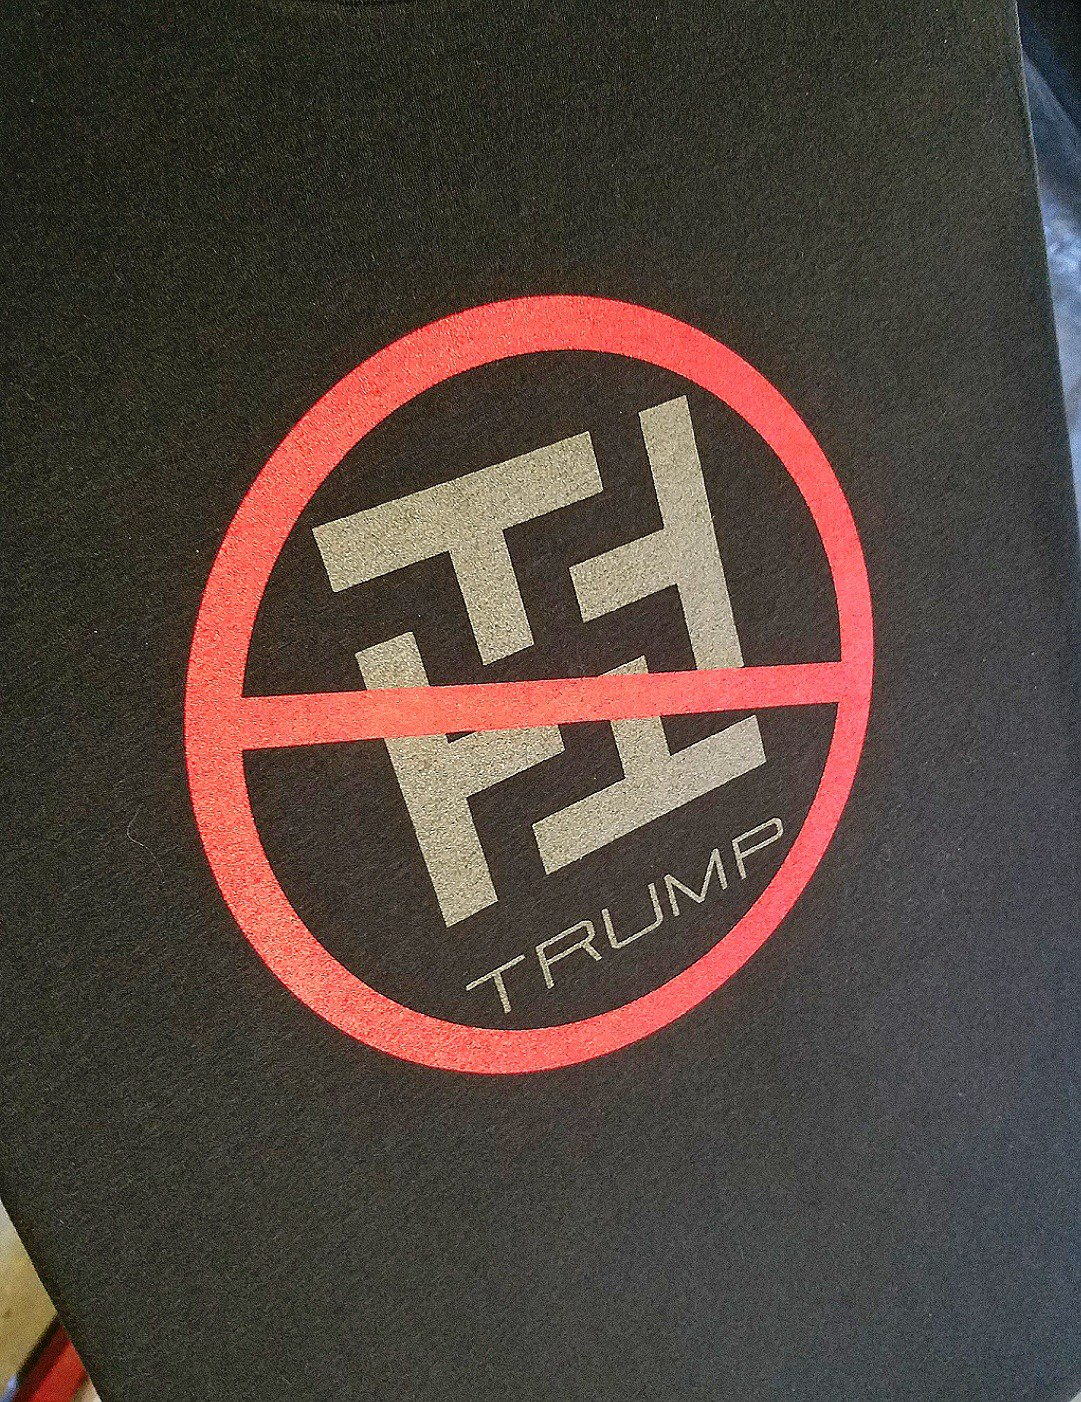 No Nazis No Trump - RESIST TRUMP FASCISM - Premium Sueded Shirt SIZE M